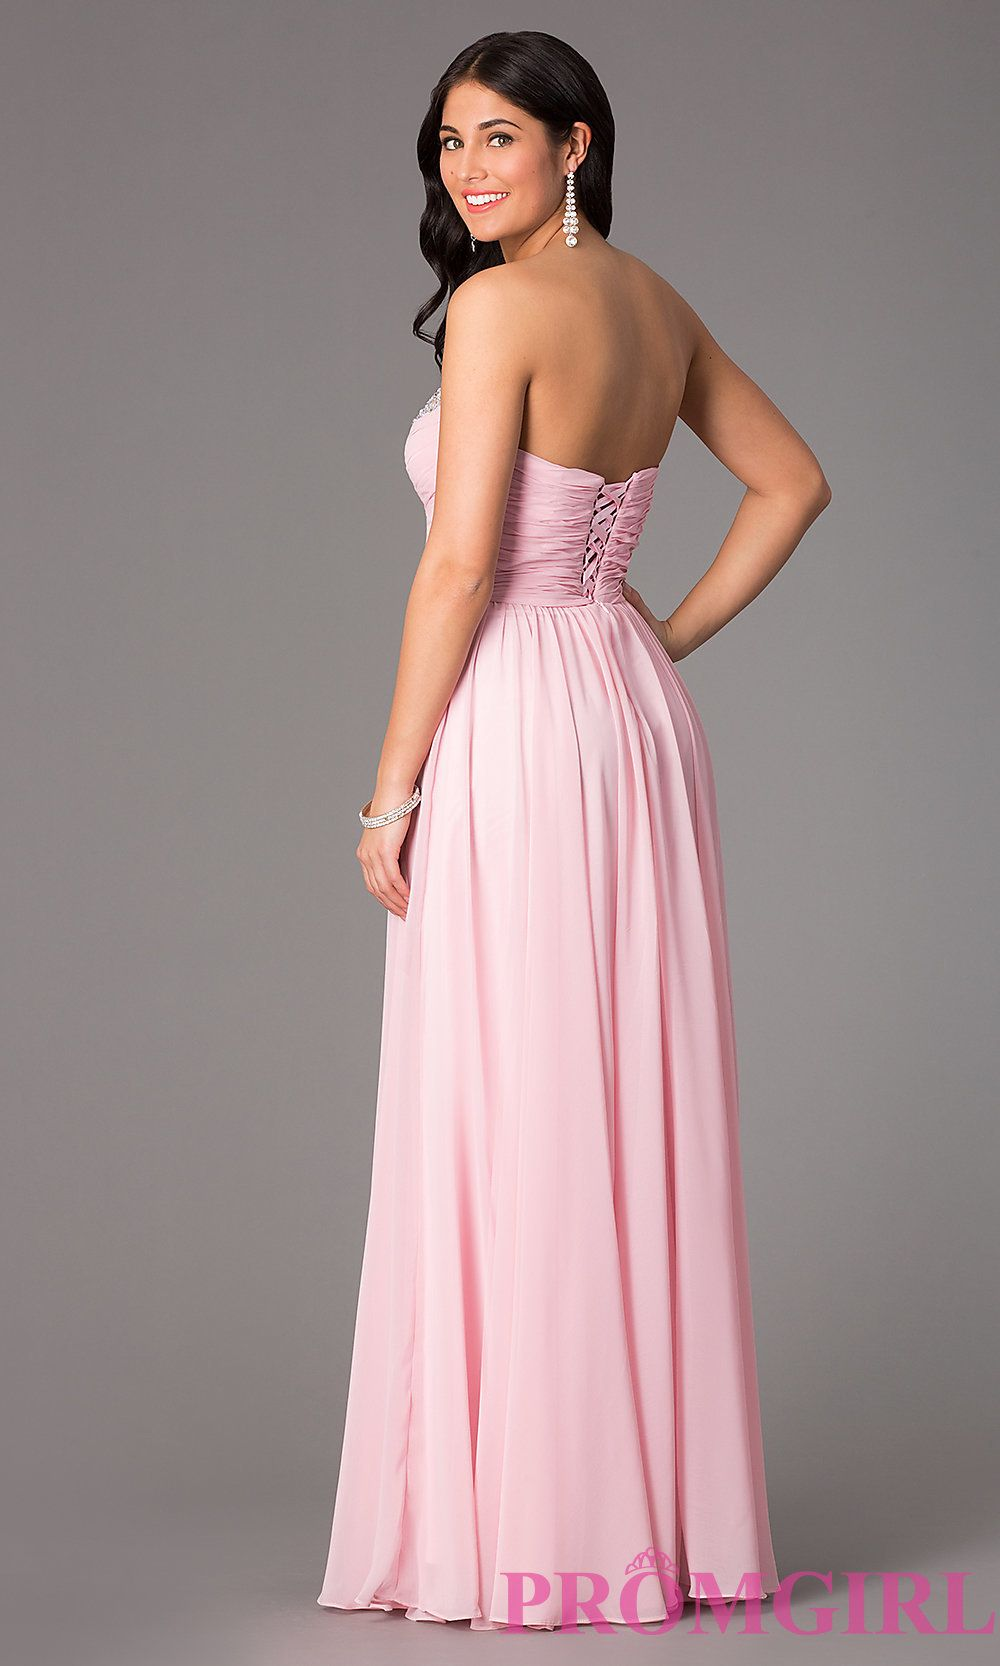 Long beaded strapless corset ball gown